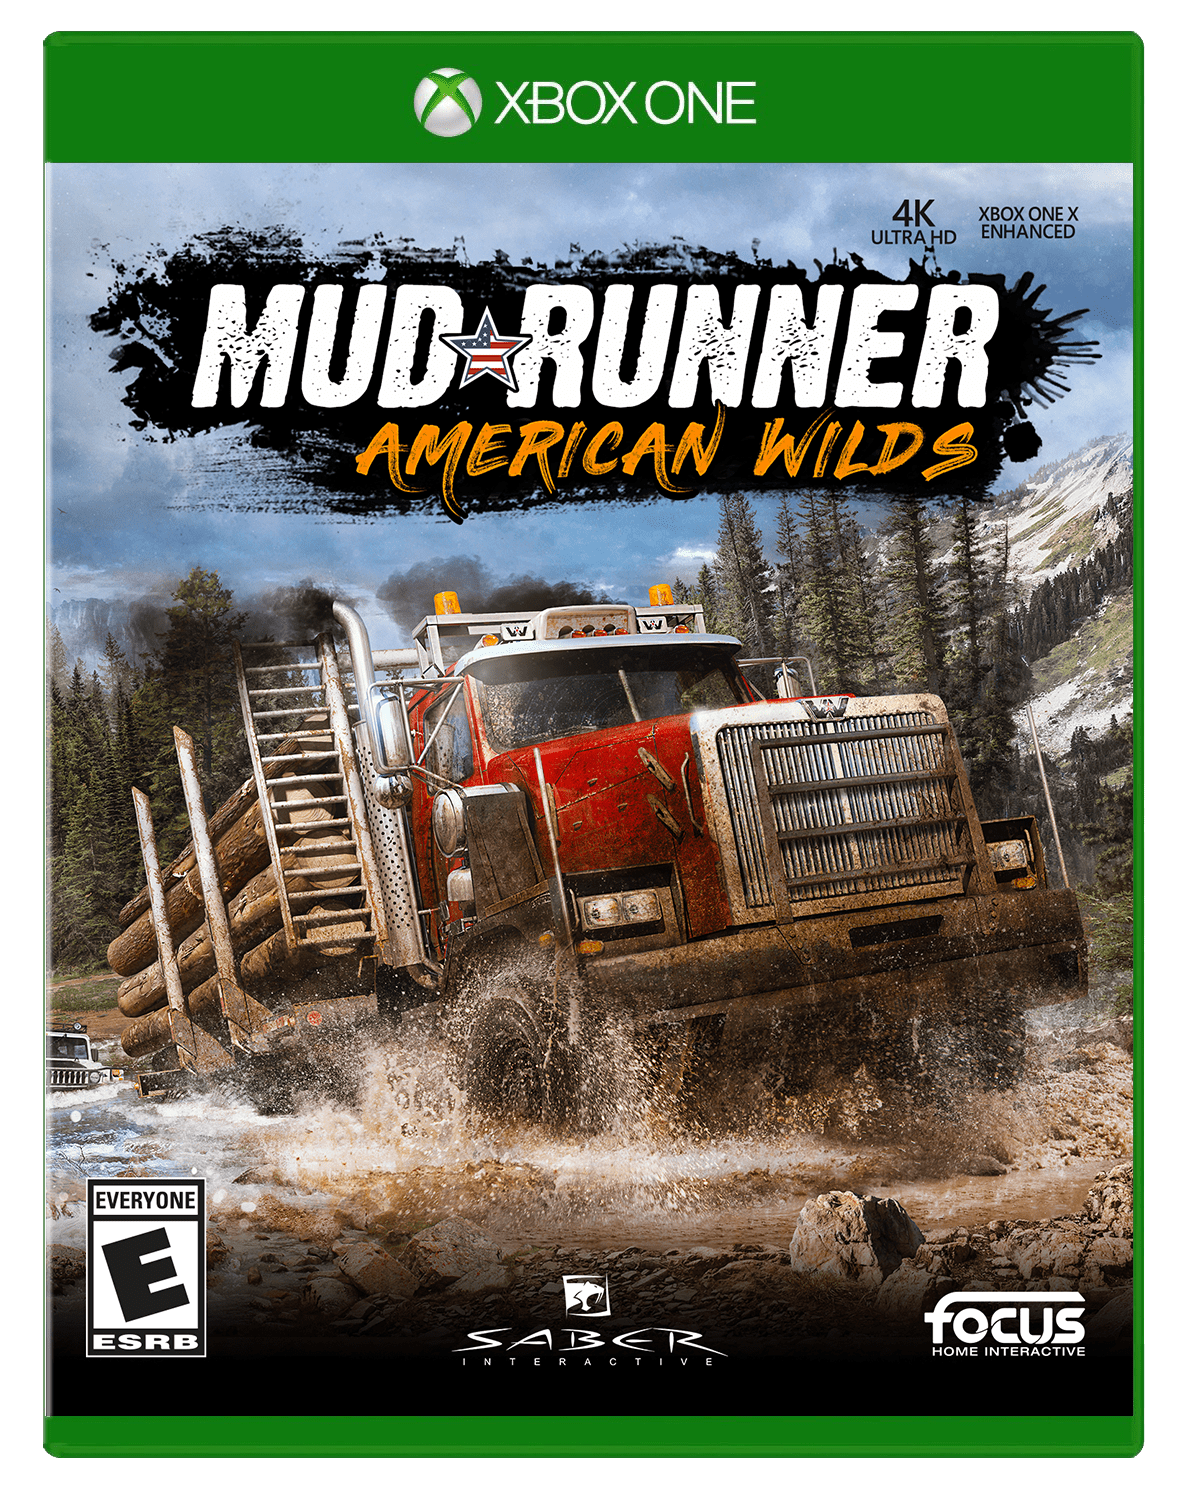 Mudrunner: American Wilds, Maximum Games, Xbox One, 859529007225